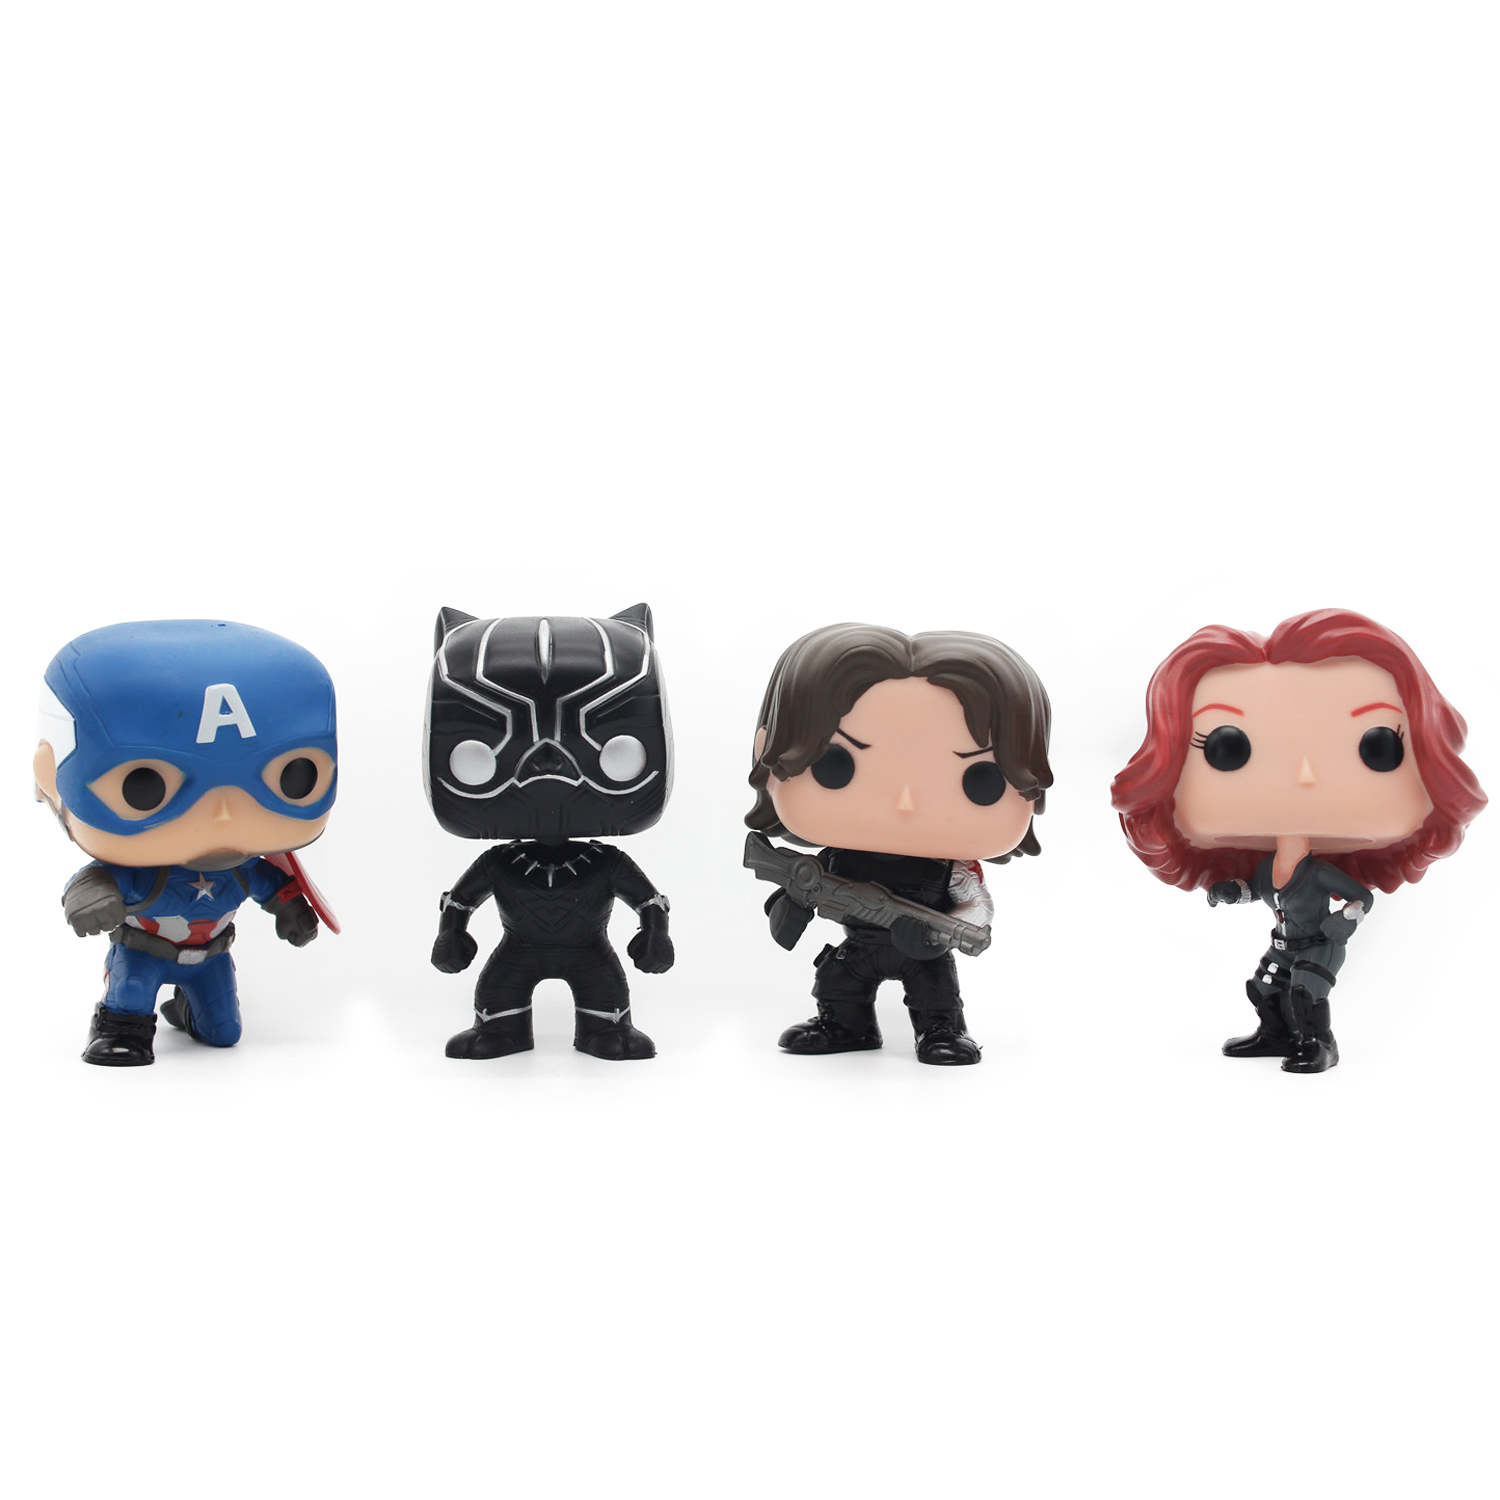 chanycore doll Avengers Marvel Captain America Civil War Black Widow Panther Winter Soldier Vinyl PVC Action Figure toy marvel shfiguarts captain america civil war black panther pvc action figure collectible model toy